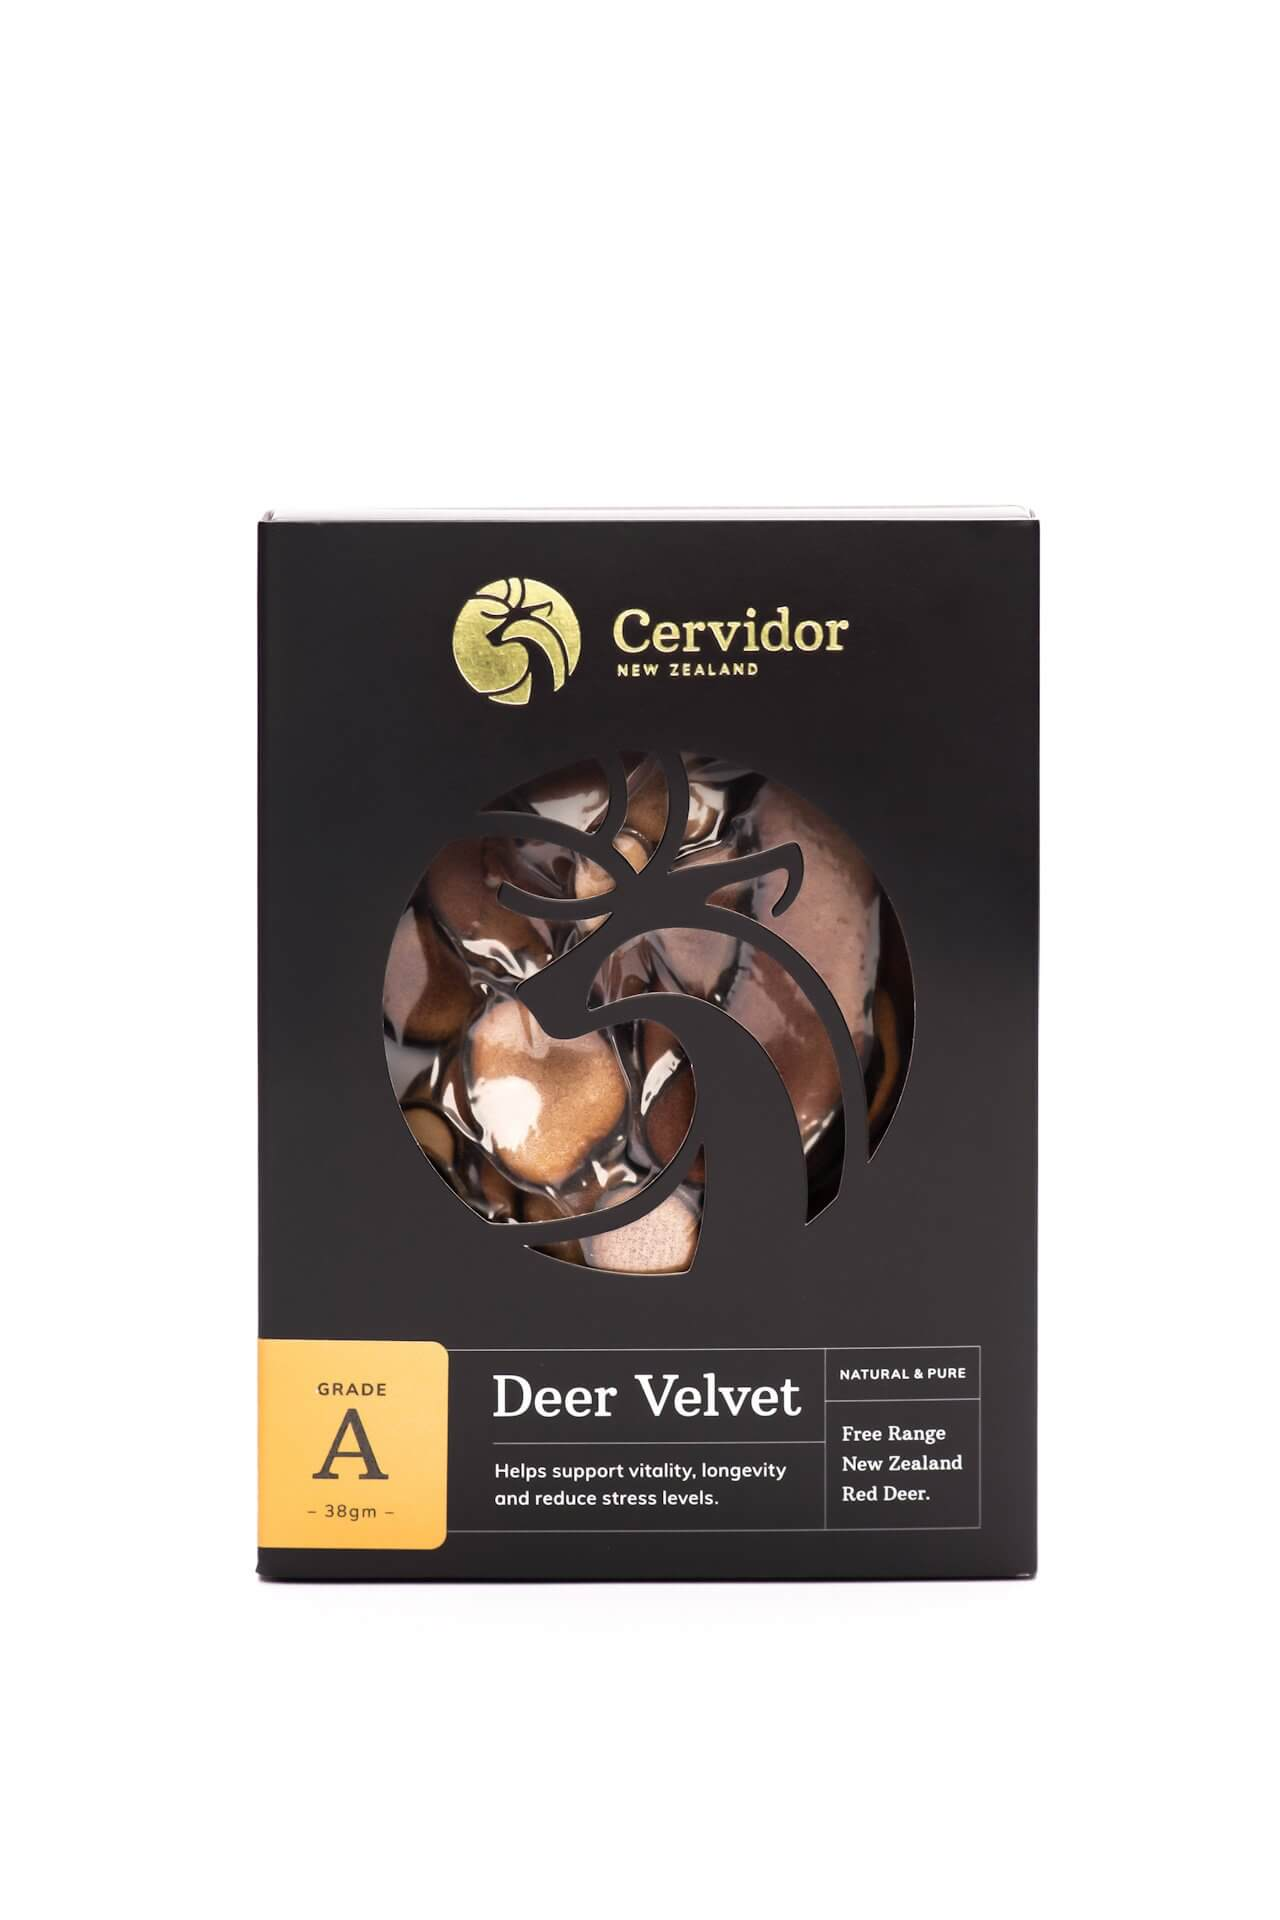 Dried Deer Velvet Slices A Grade